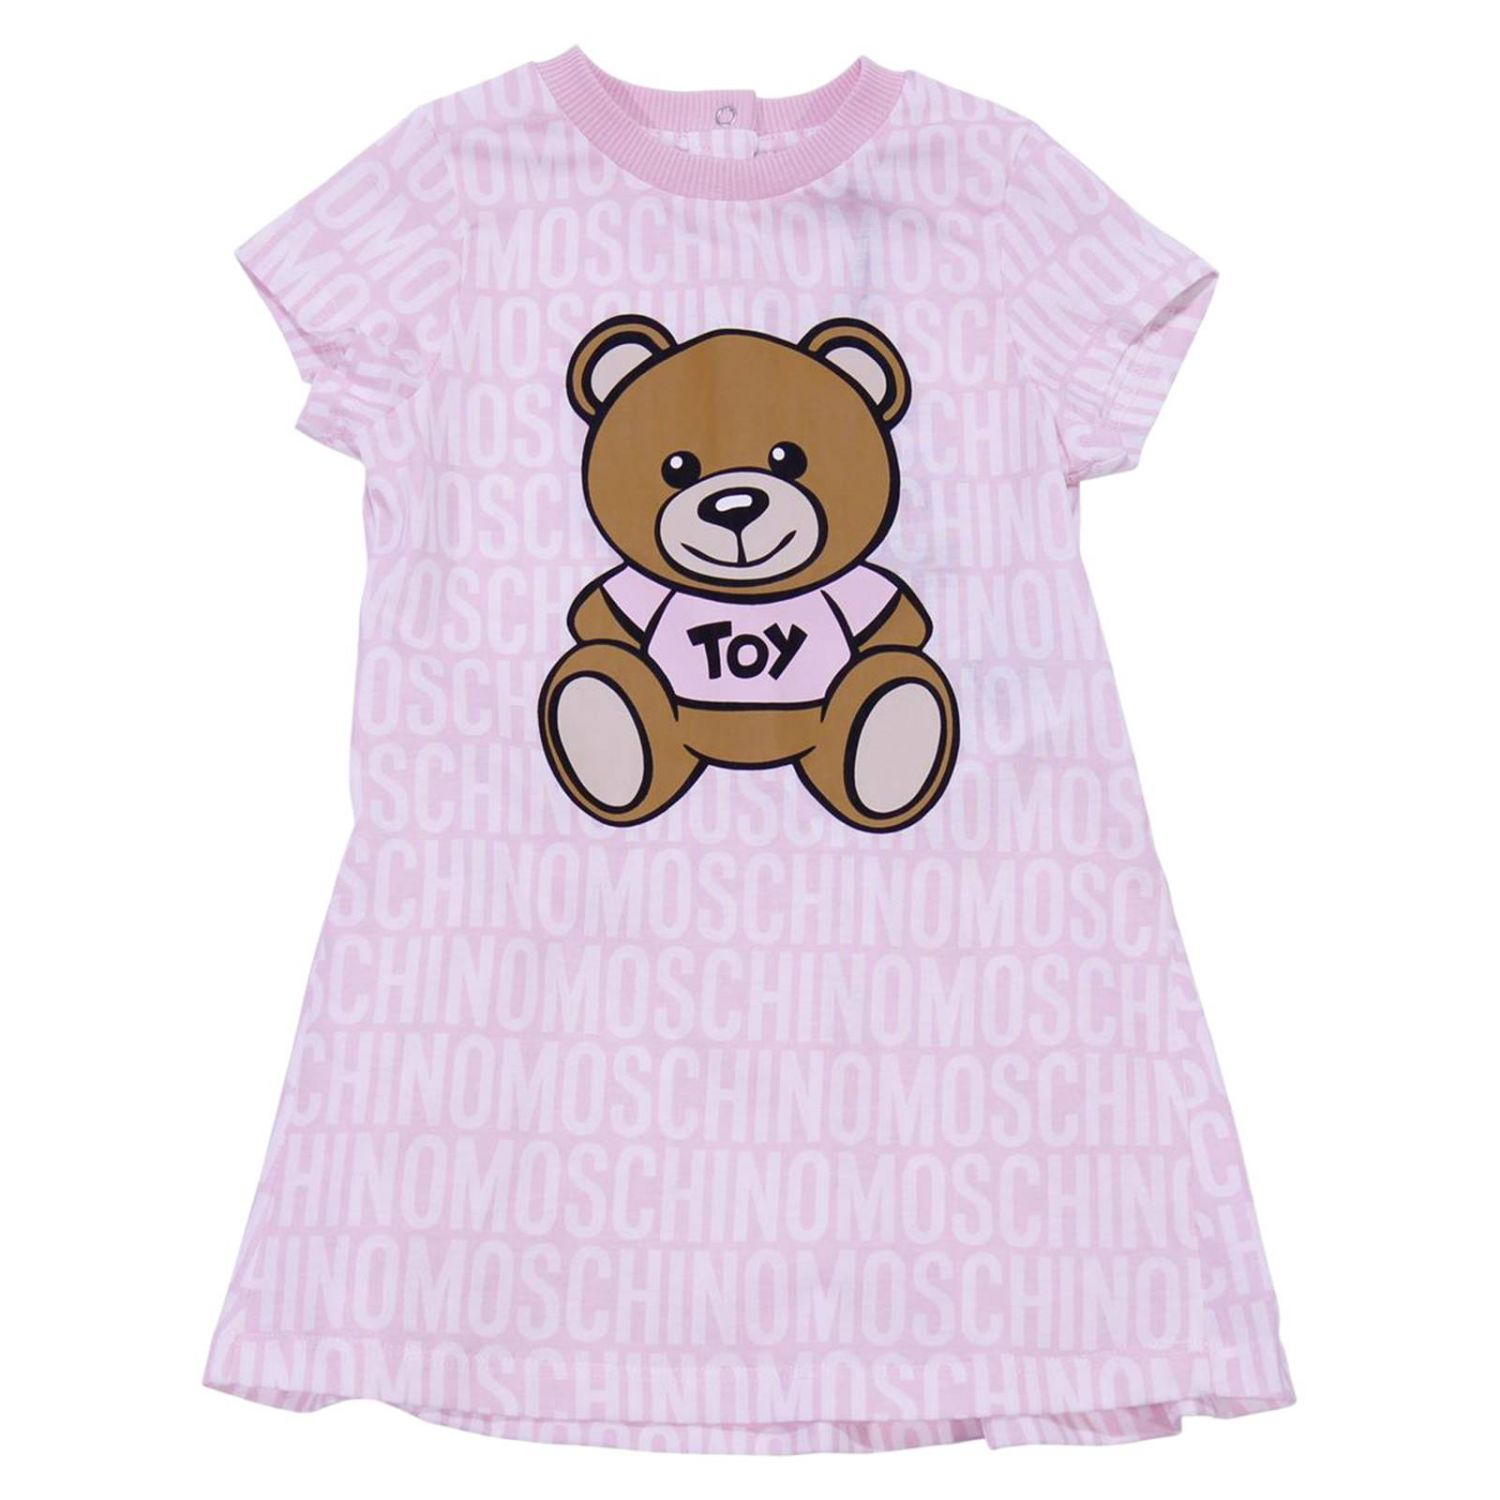 Dress Dress Kids Moschino Baby 8366845